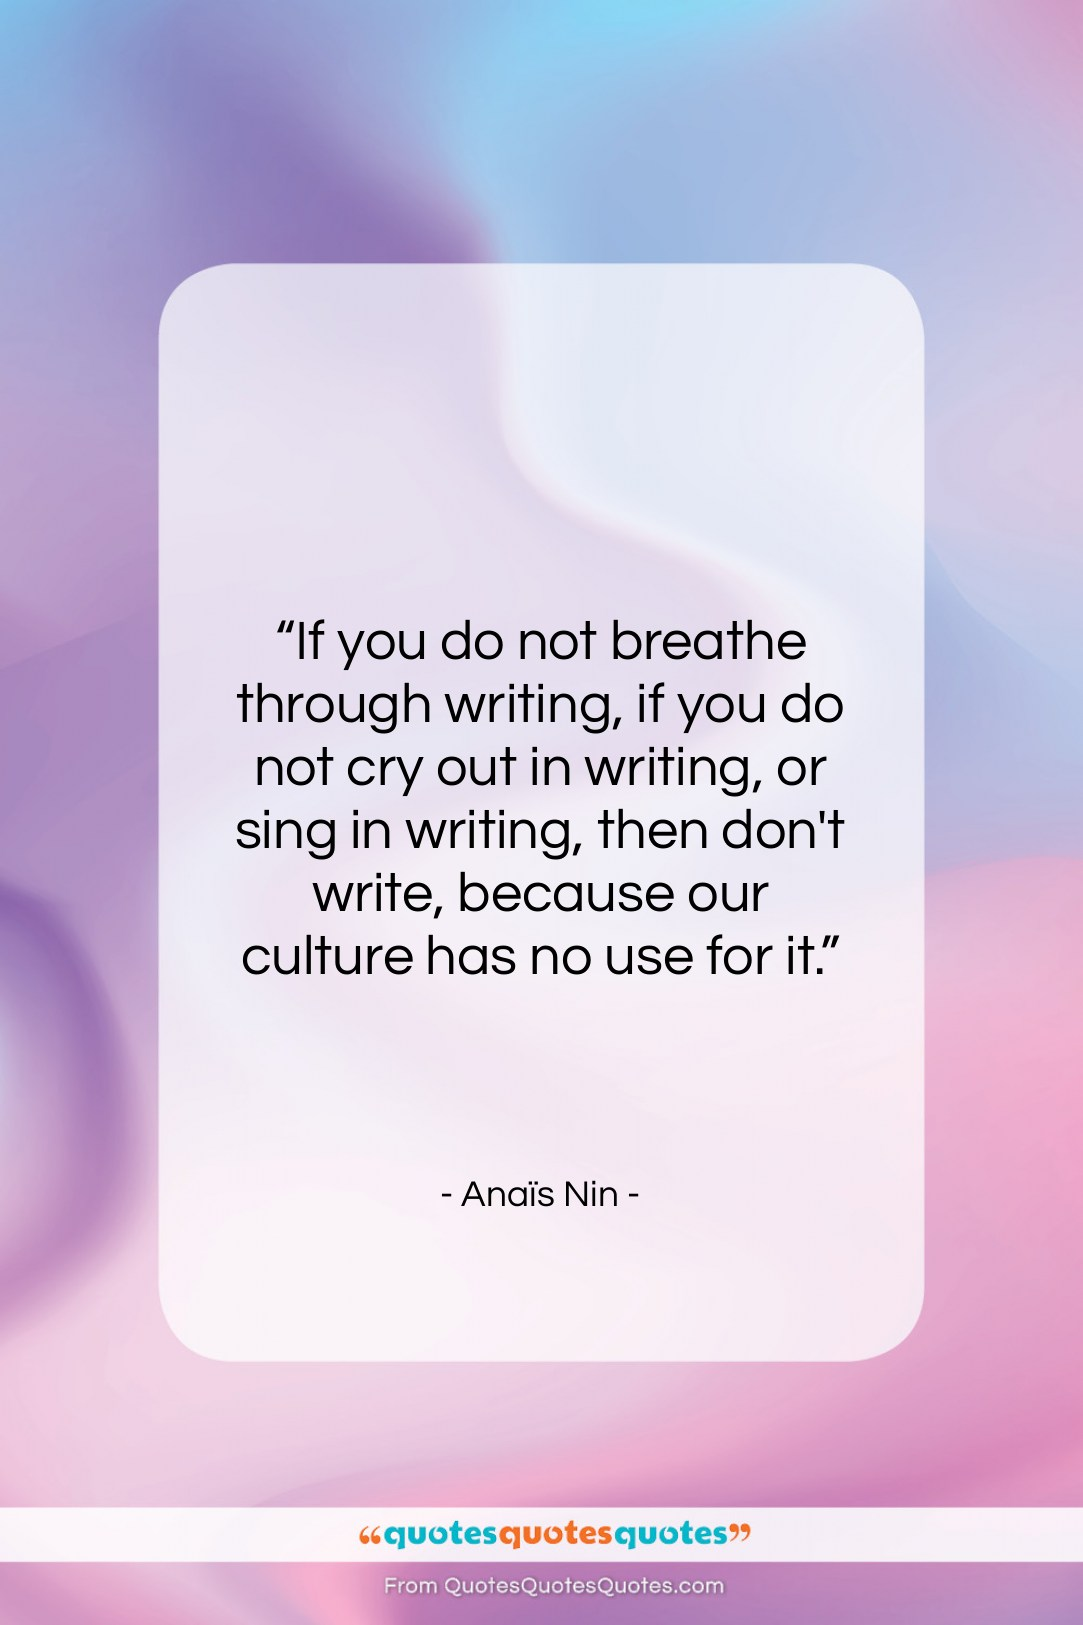 """Anaïs Nin quote: """"If you do not breathe through writing,…""""- at QuotesQuotesQuotes.com"""